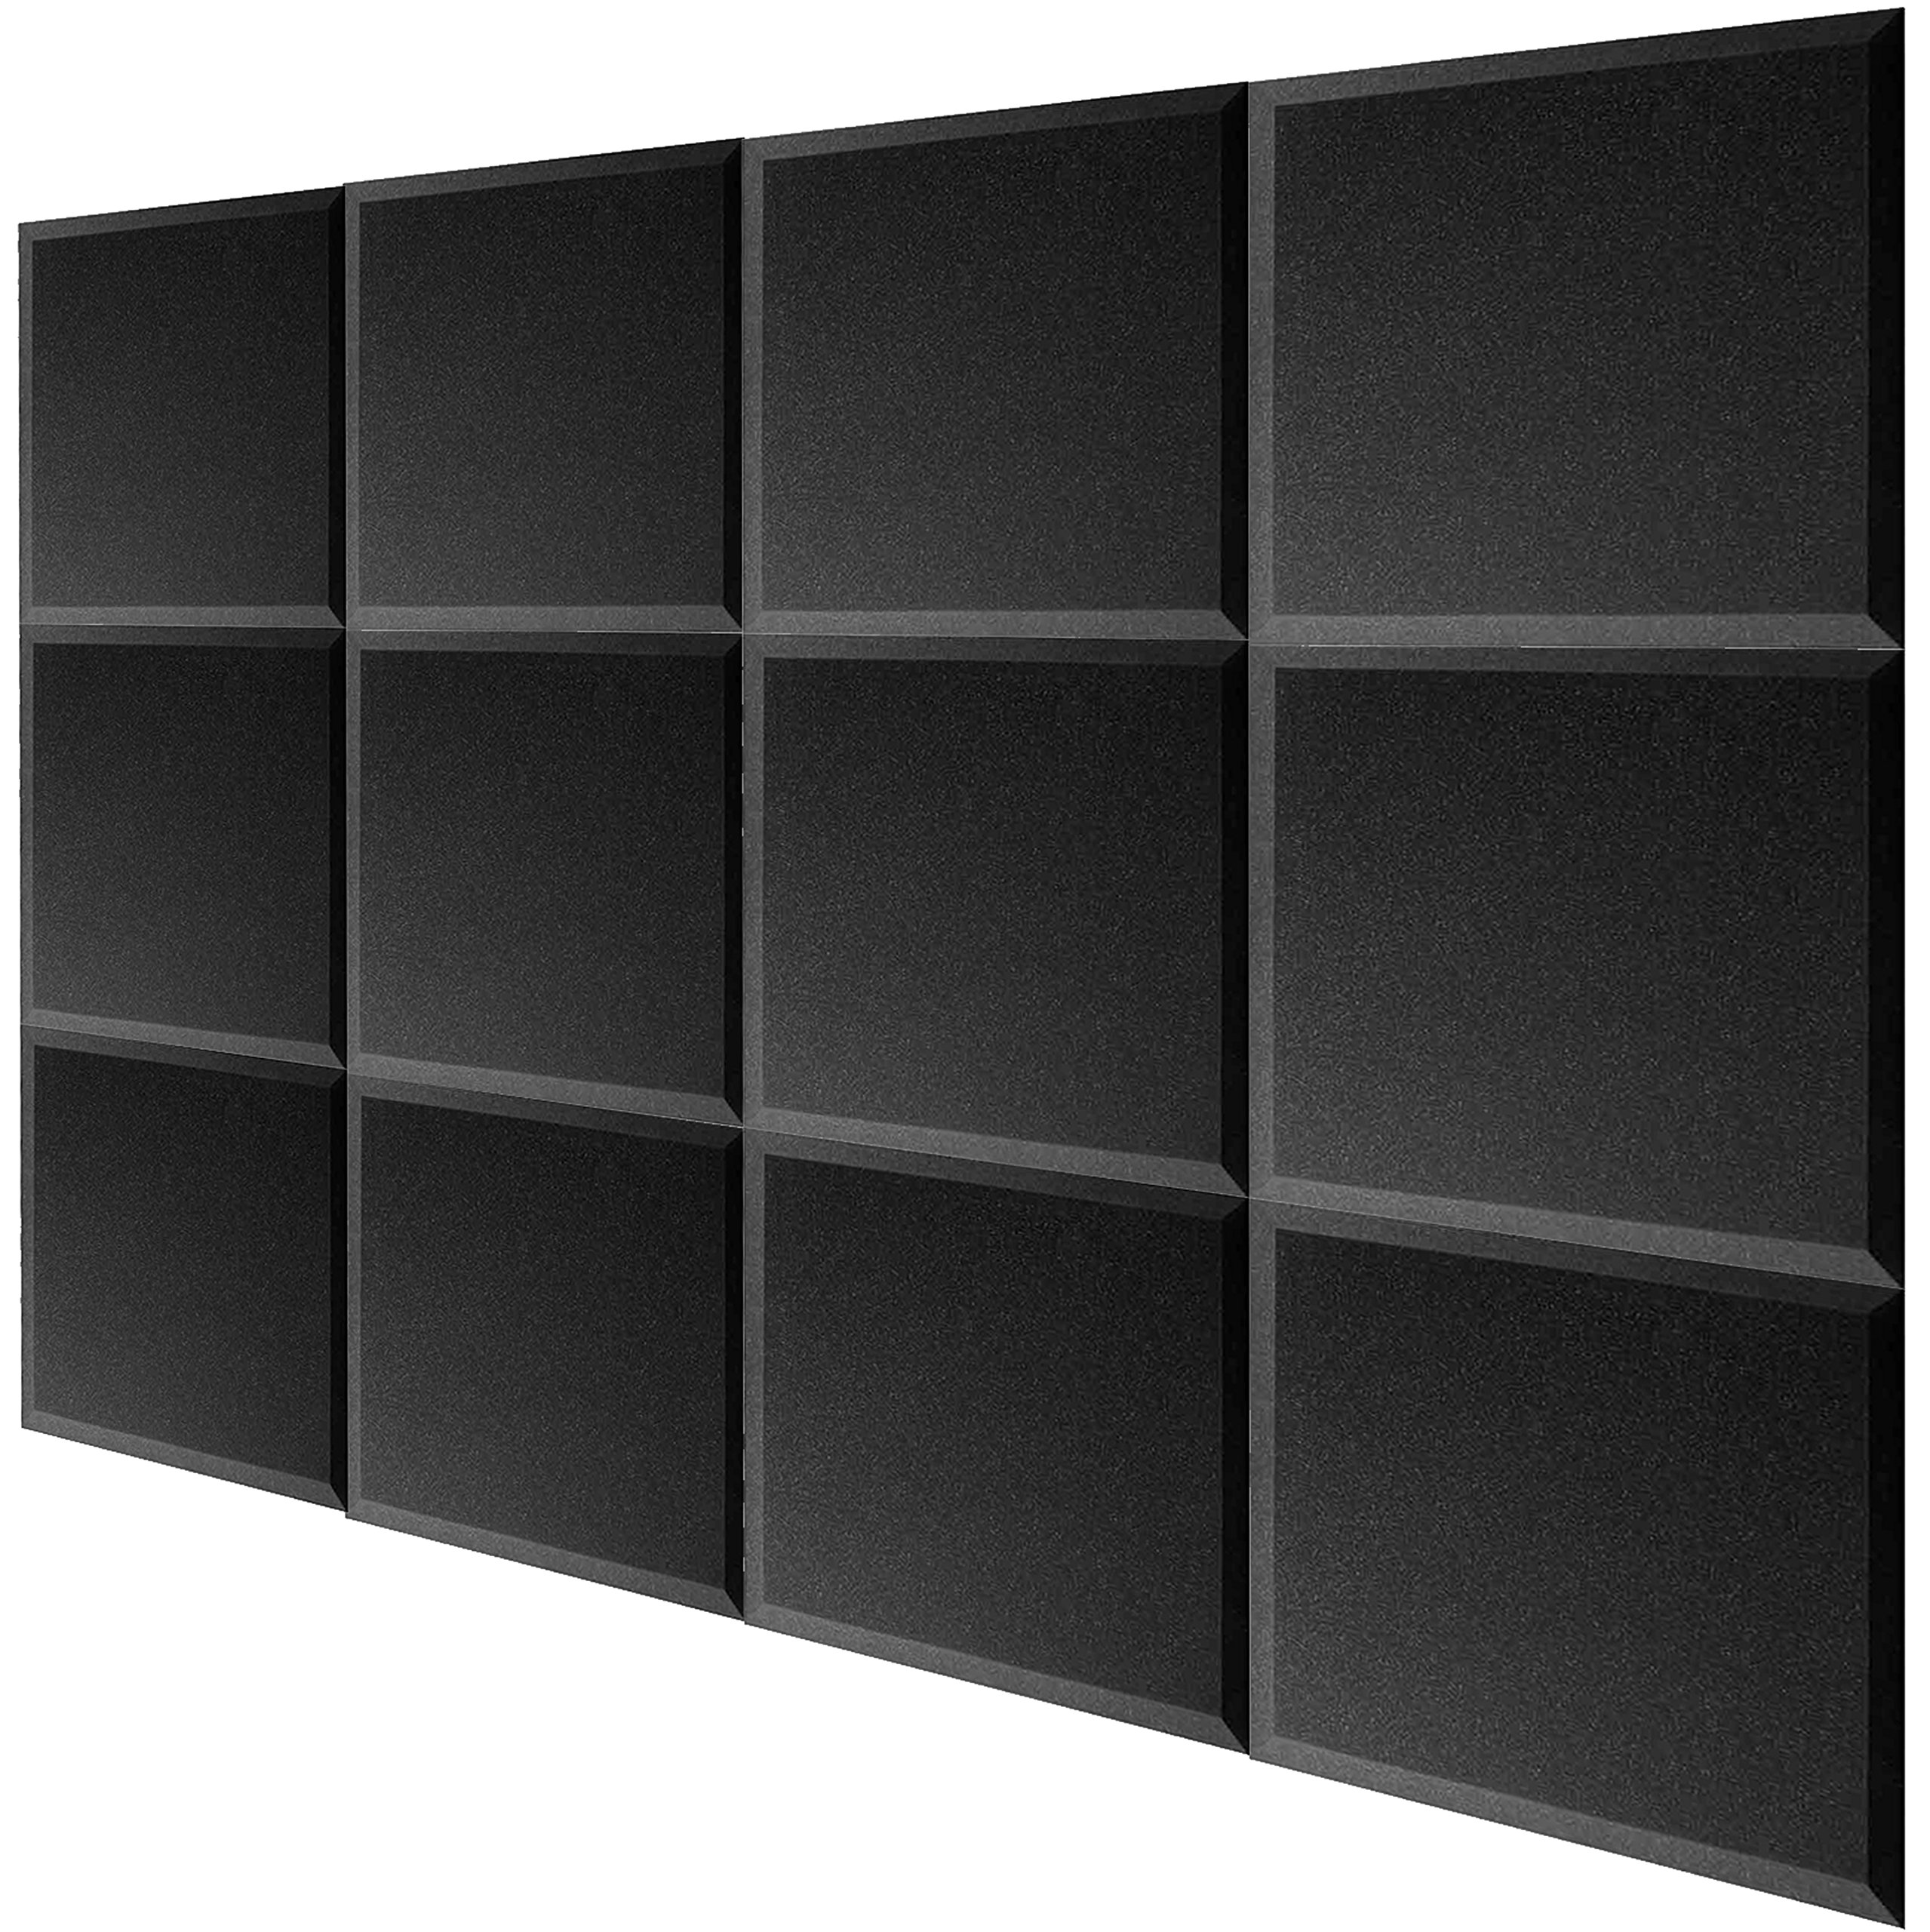 Mybecca 12 Pack Bevel Square Acoustic Foam Panel Bevel Tiles Soundproofing Wall 12 x 12 x 1 inch, Made in the USA - Color: Charcoal